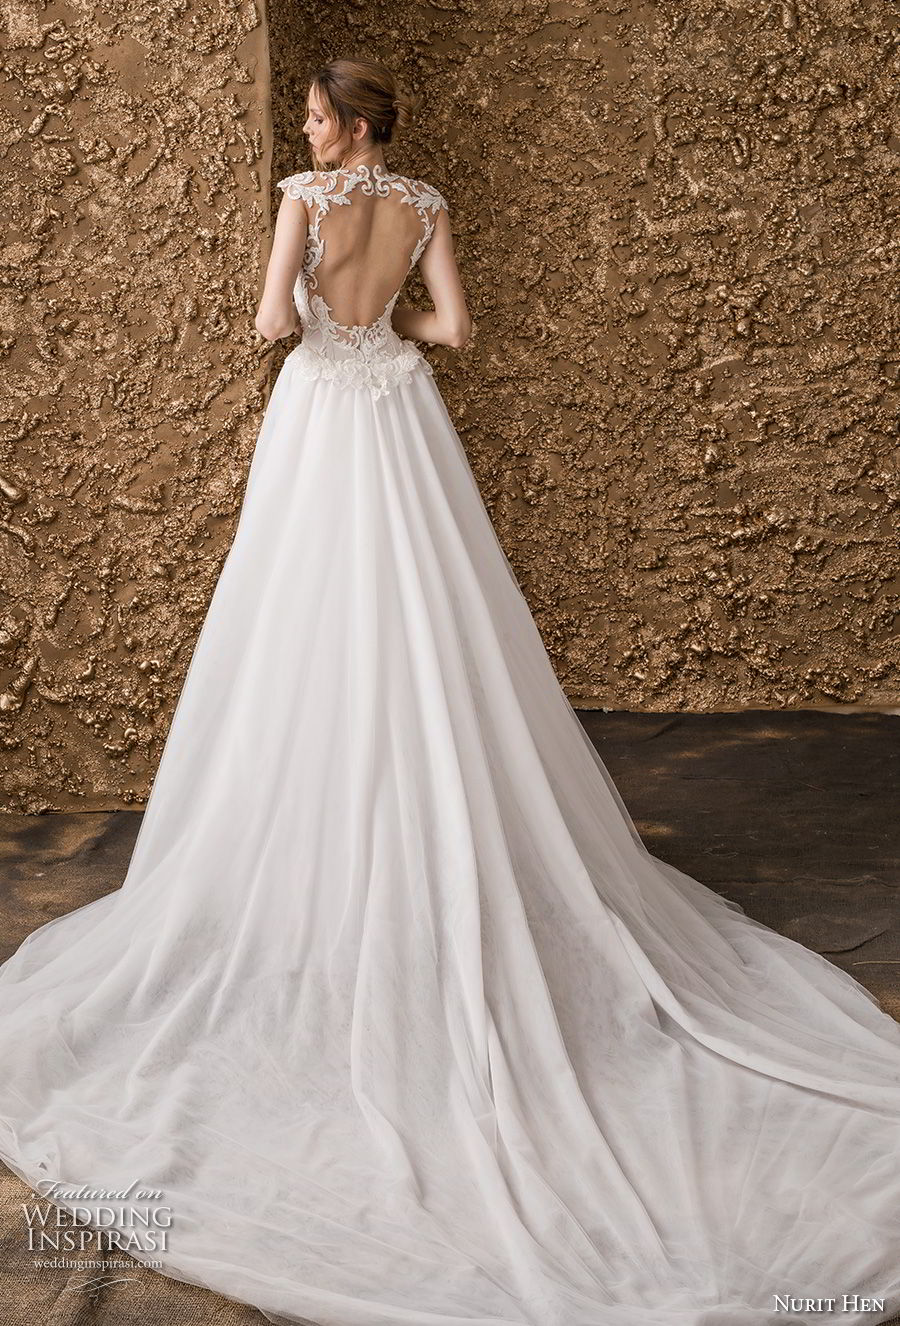 nurit hen 2018 bridal cap sleeves illusion jewel deep plunging sweetheart neckline elegant princess fit and flare wedding dress a  line overskirt keyhole back royal train (2) bv